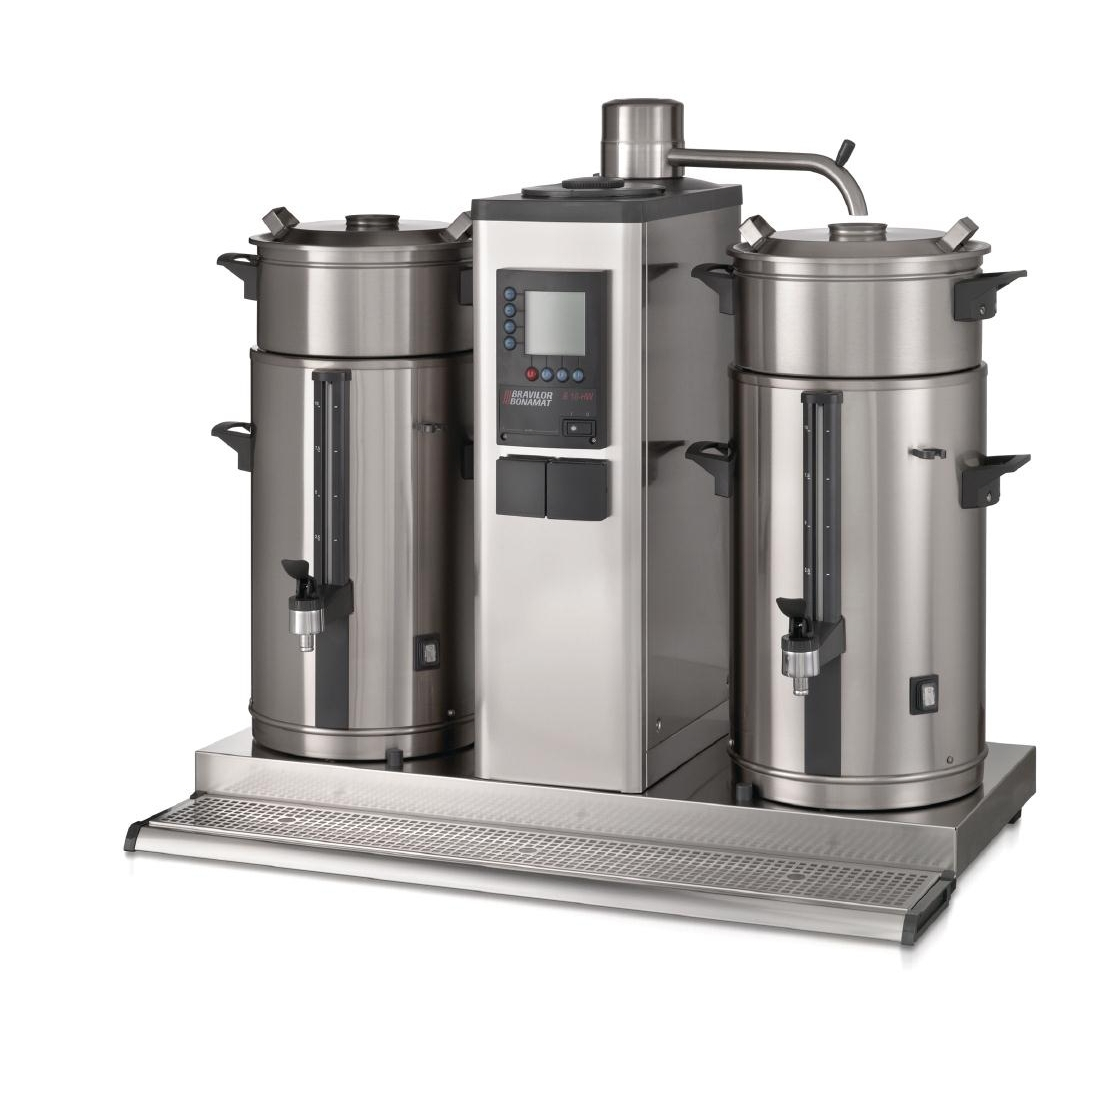 Bravilor B20 Bulk Coffee Brewer with 2x20Ltr Coffee Urns 3 Phase